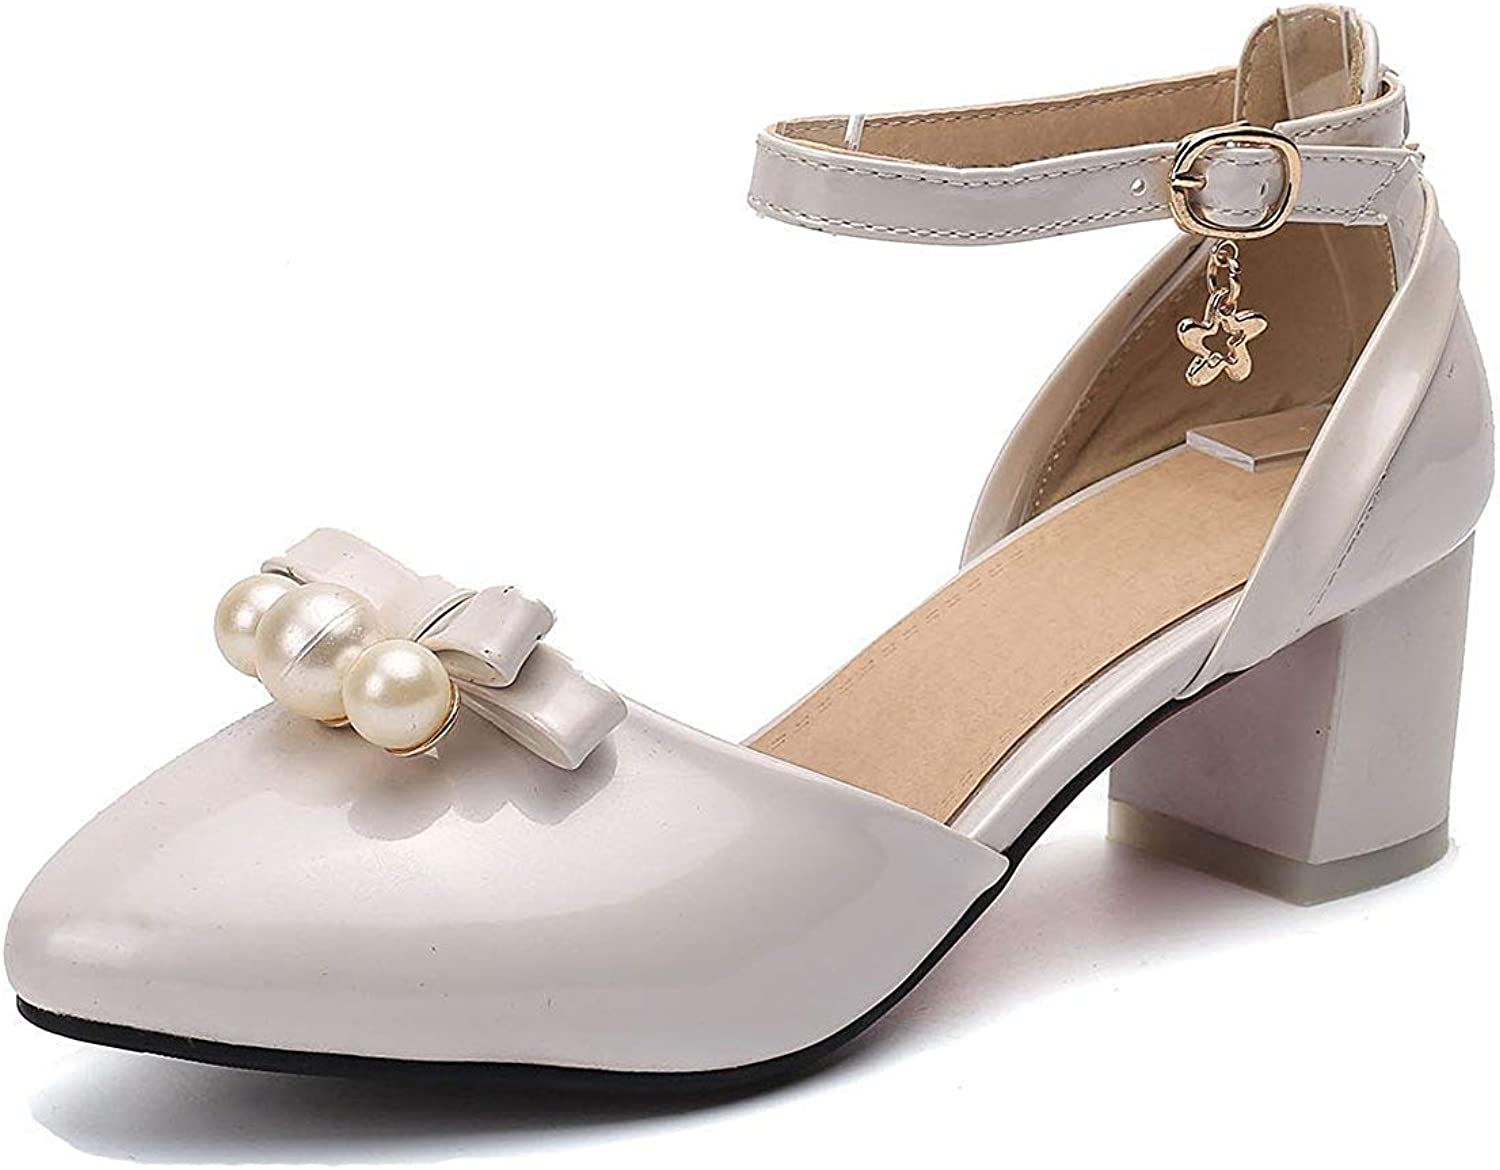 Unm Women's Mid Heel Sandals with Bows - Beaded Pointed Toe Buckled - Burnished Chunky Ankle Strap